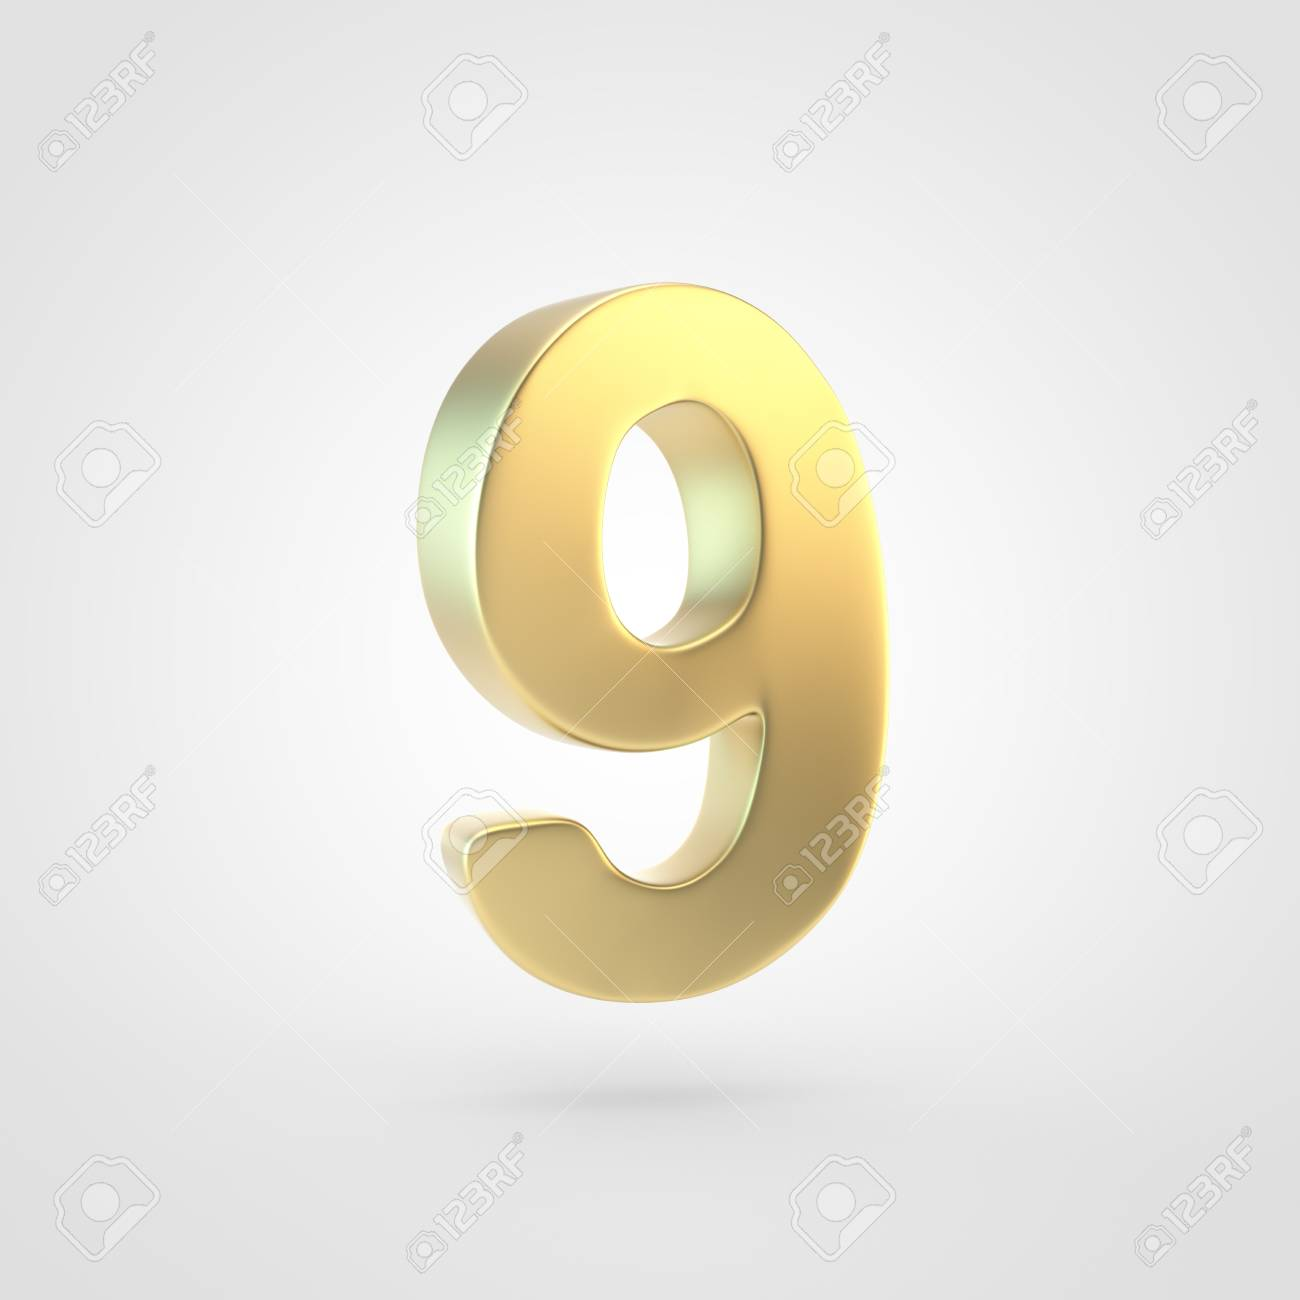 Golden Number 9 3D Rendering Of Matted Golden Font Isolated 1300x1300